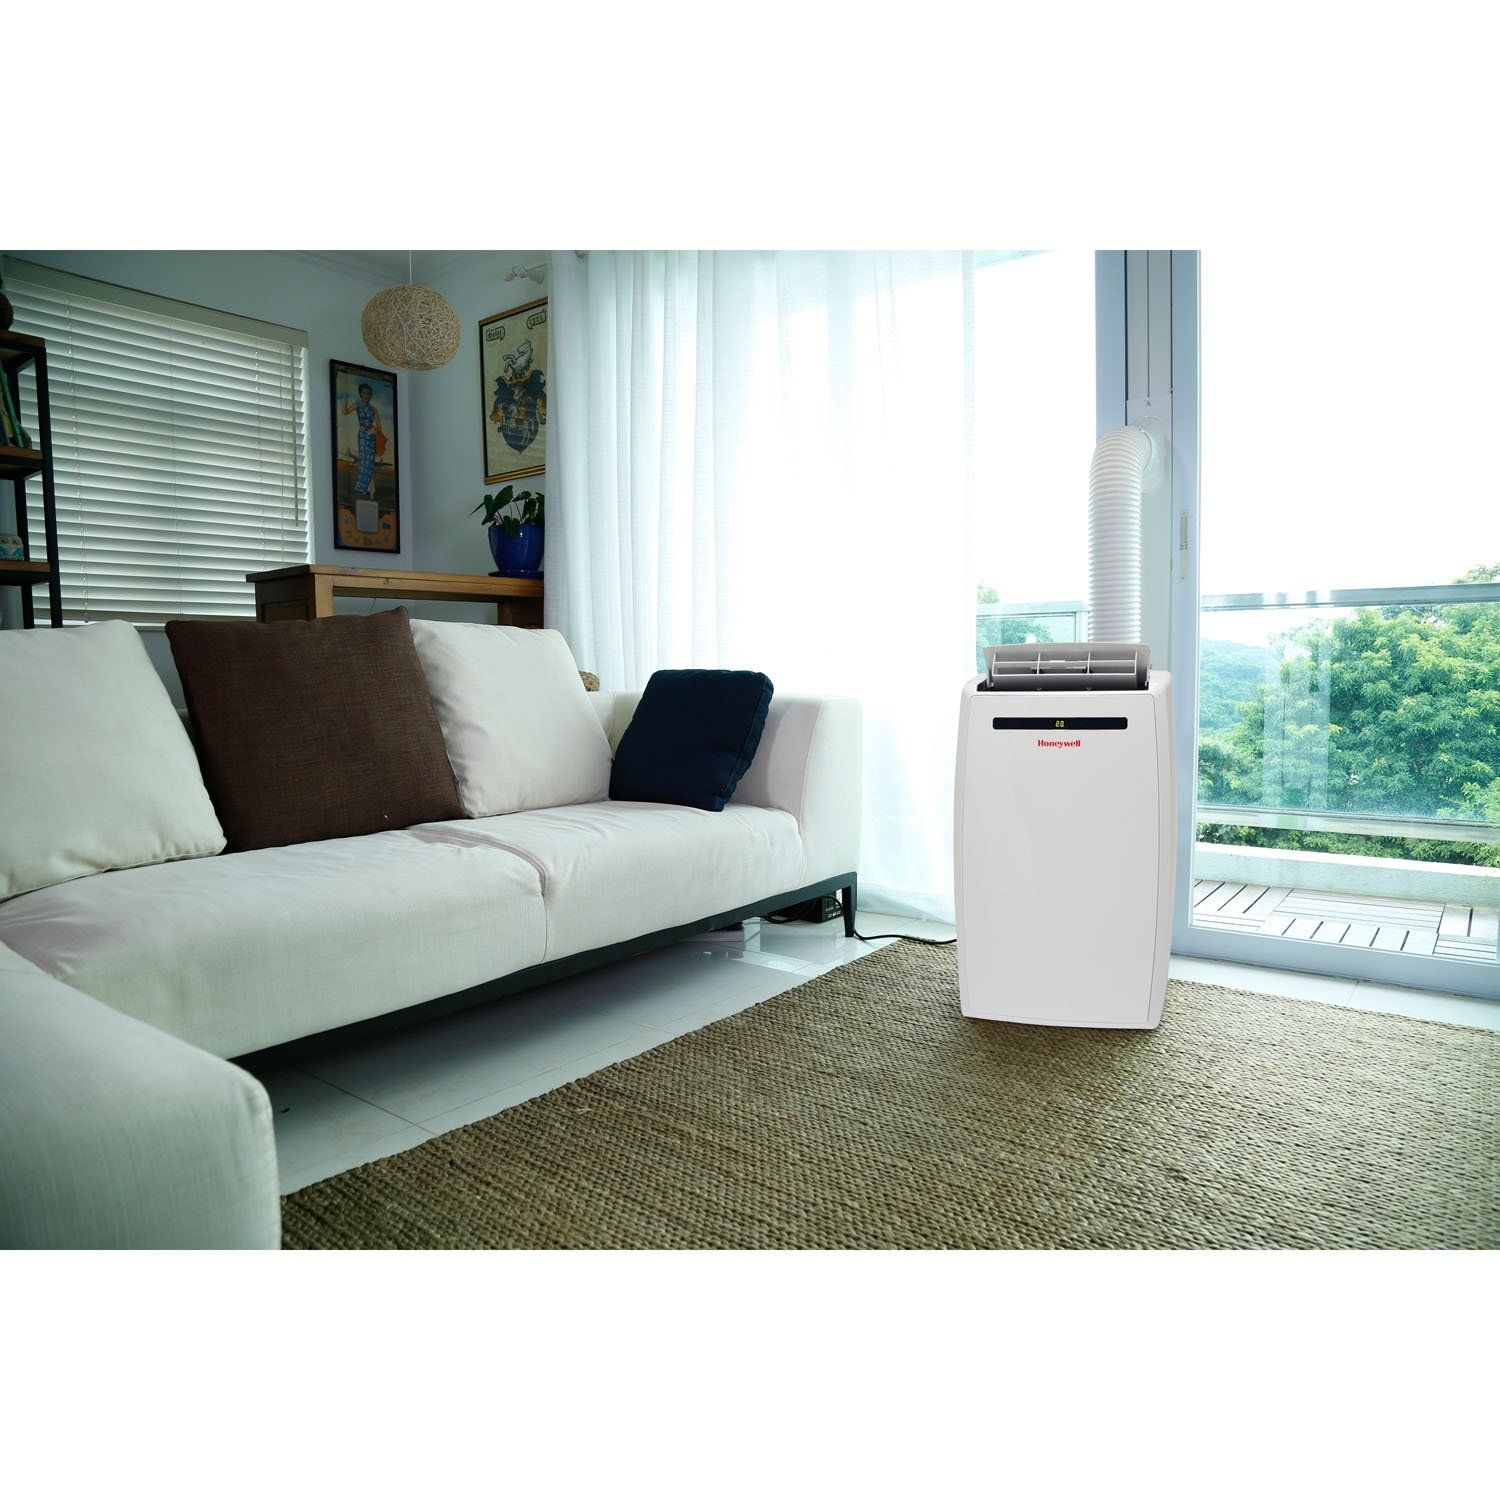 Portable Air Conditioner with Dehumidifier & Fan 270.65 (Re